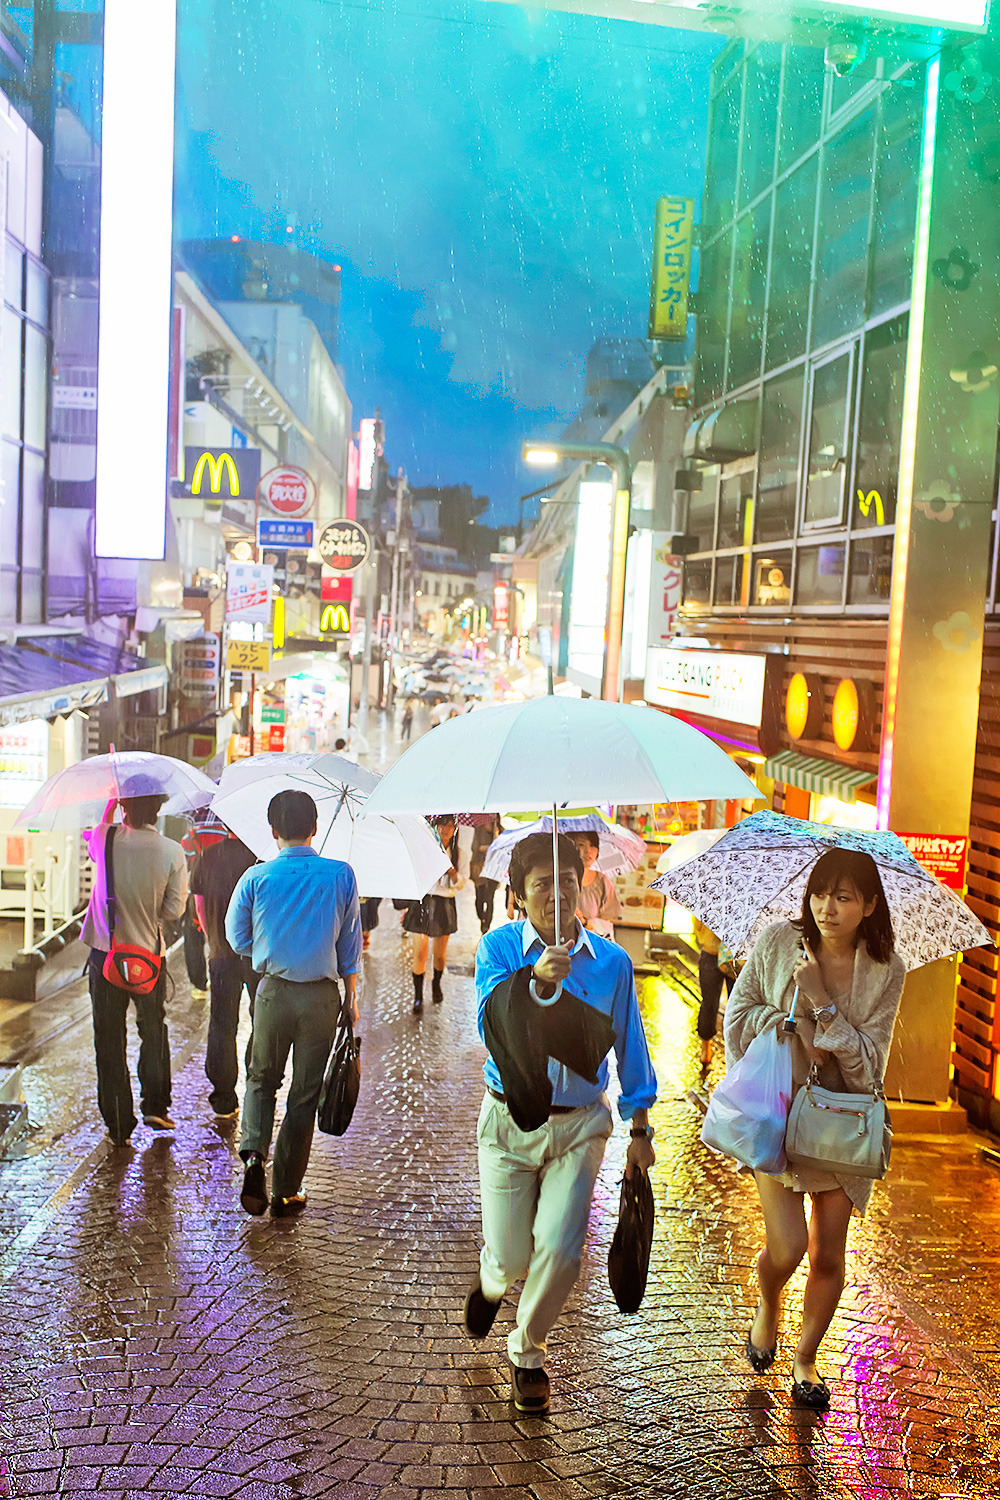 tokyo-fashion:  Umbrellas on Takeshita Dori. Raining pretty hard in Harajuku right now as the typhoon approaches. Everyone is trying to make it home before the trains stop (if they do).